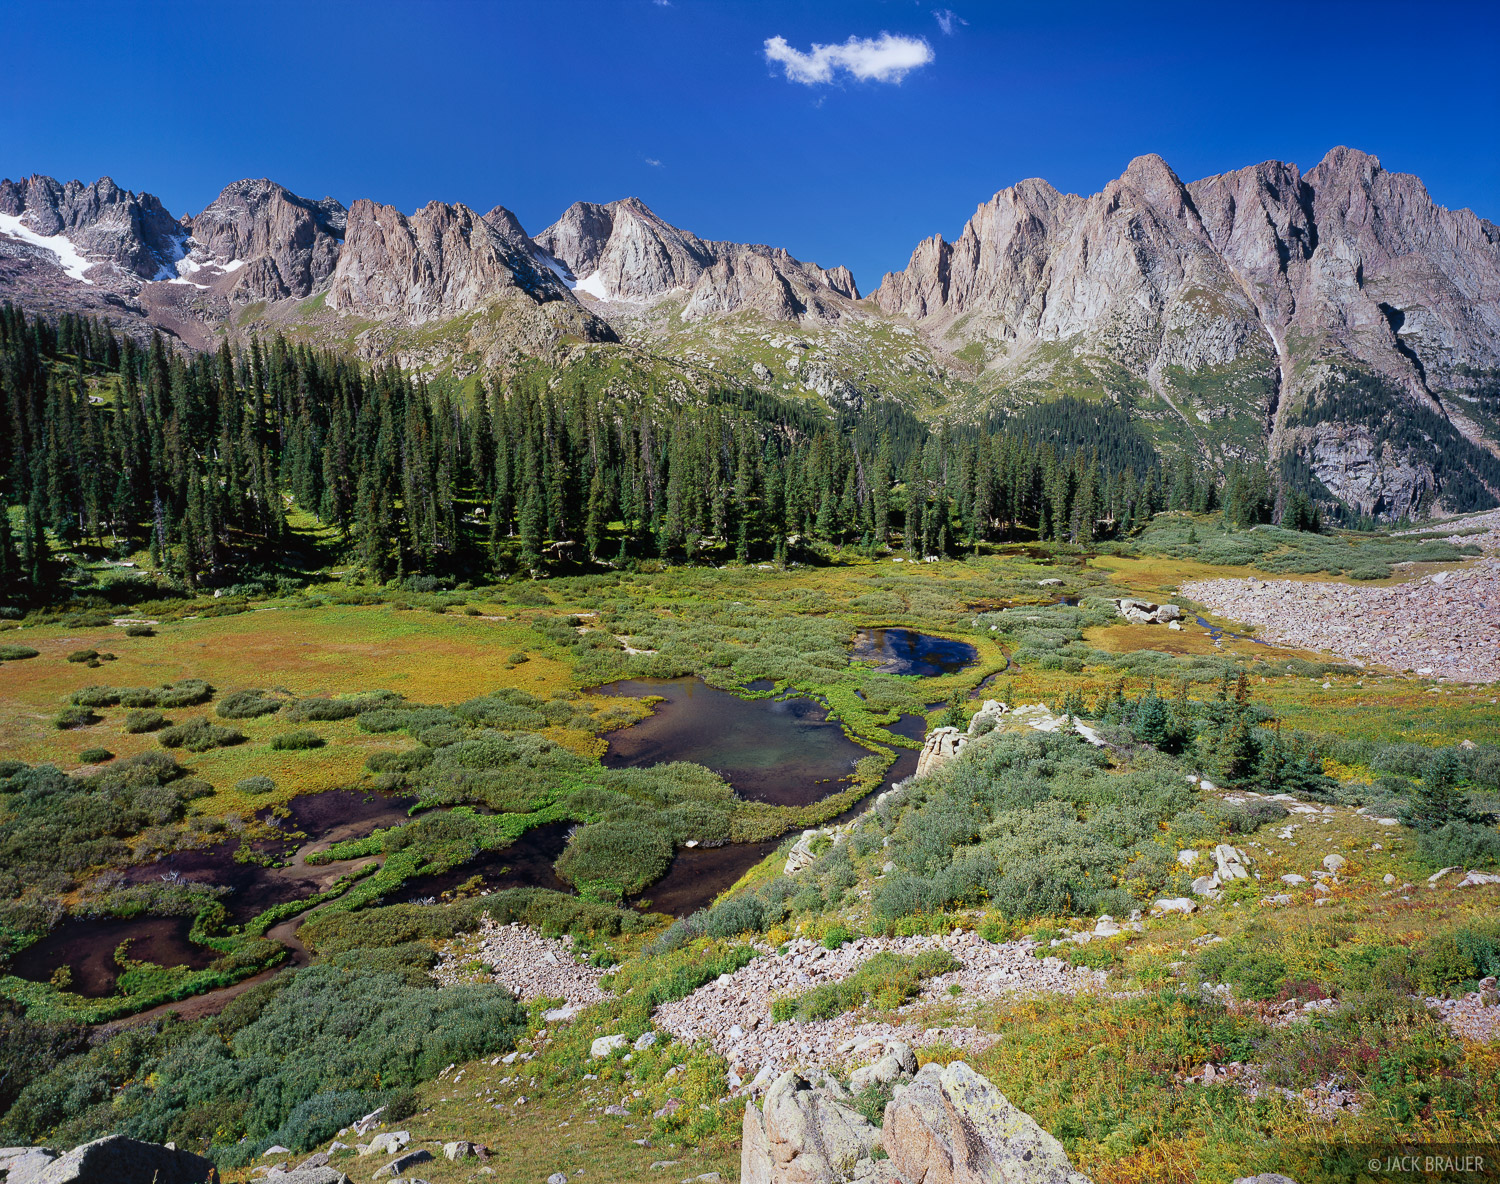 Meadow, Needle Mountains, Weminuche Wilderness, Colorado, photo